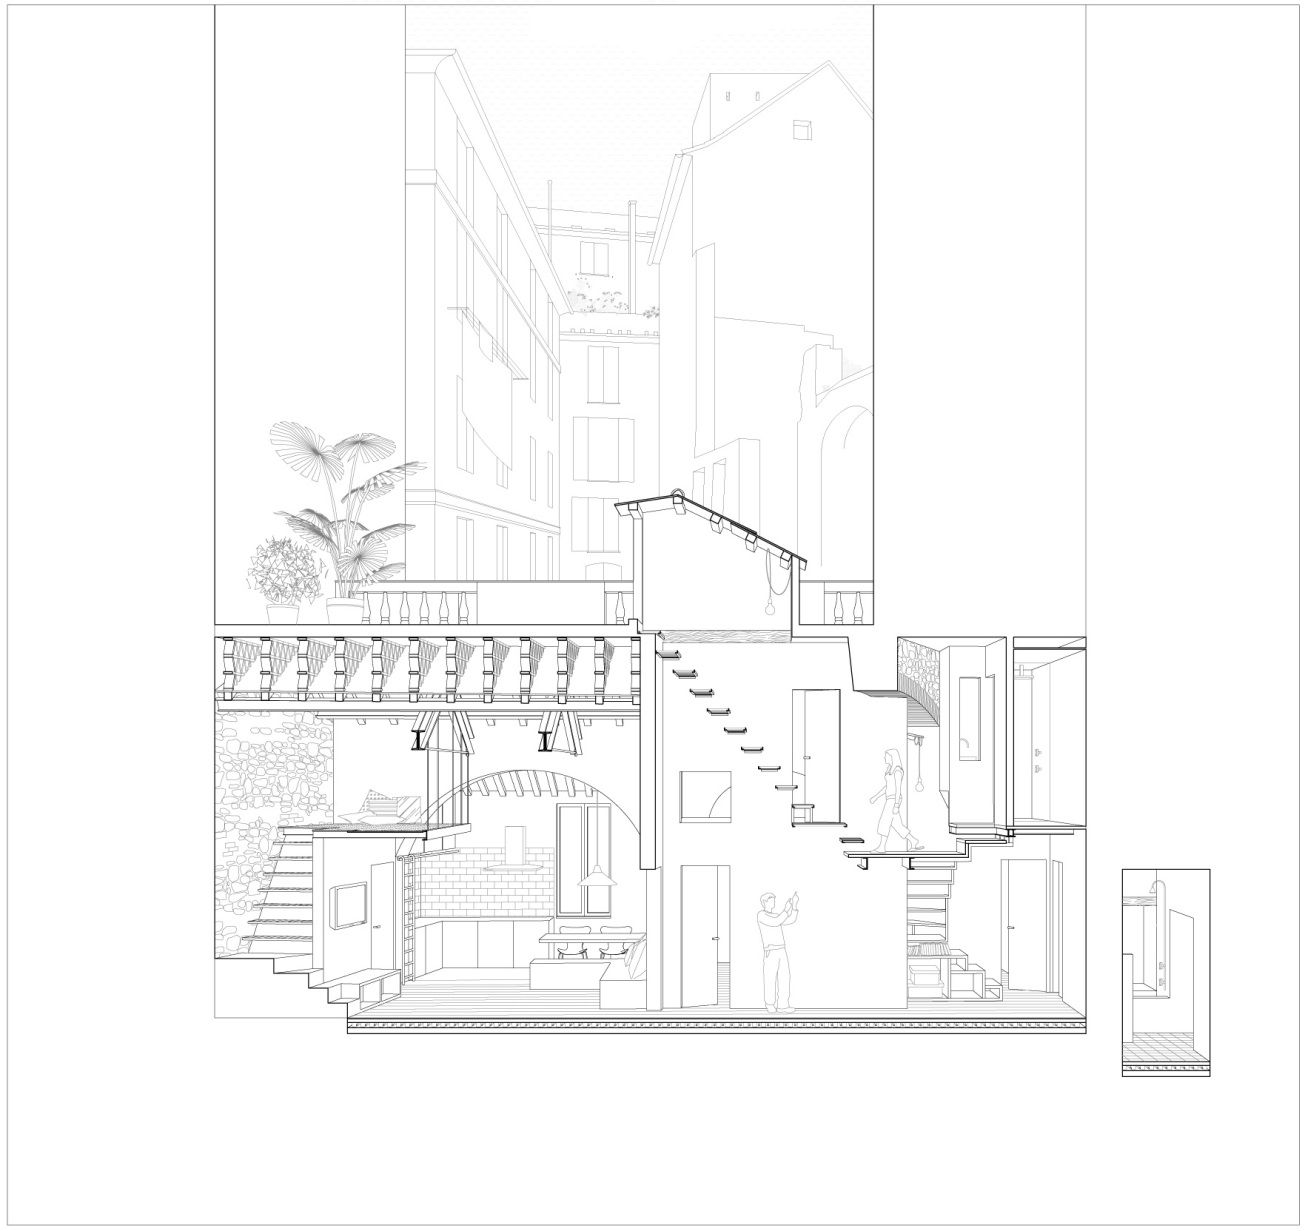 PERSP_SECT_/Volumes/Public/Works/045_Santa Fede/progetto